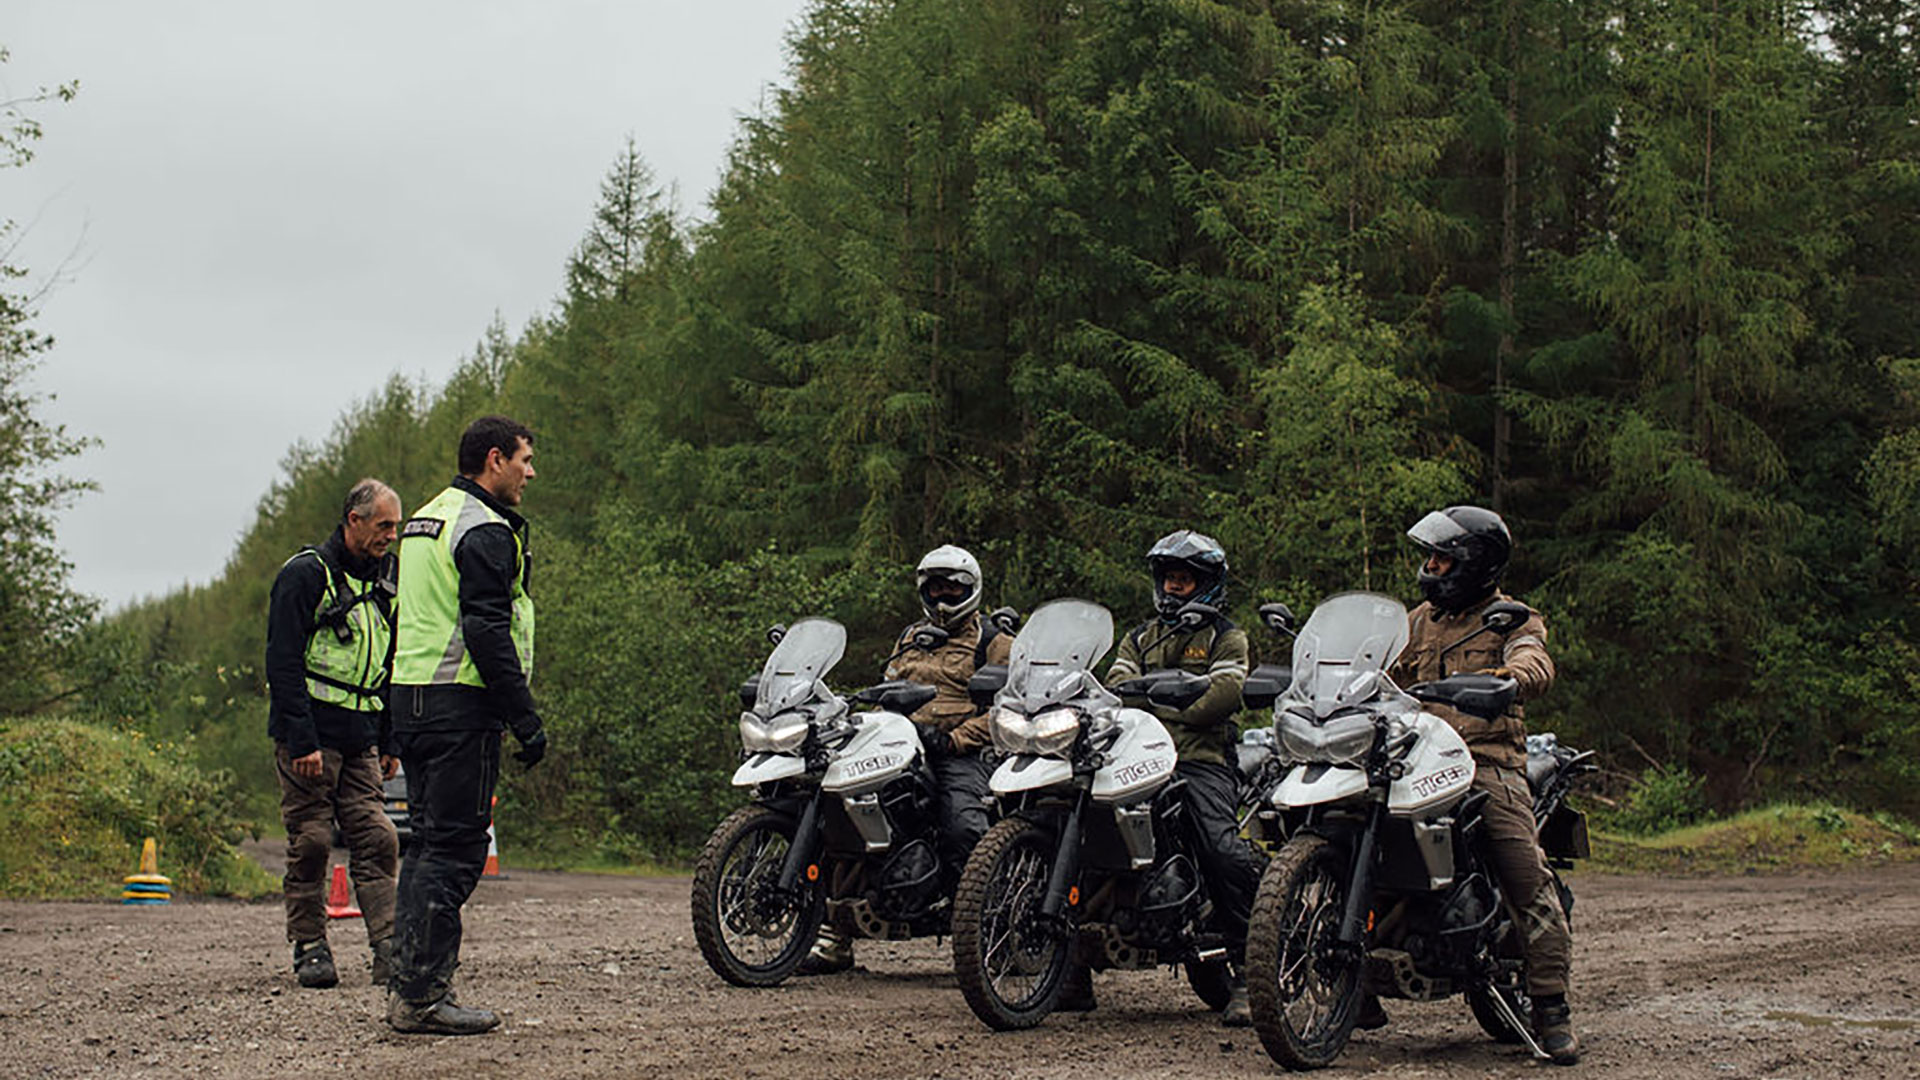 Triumph training course for Tiger 800 experience day